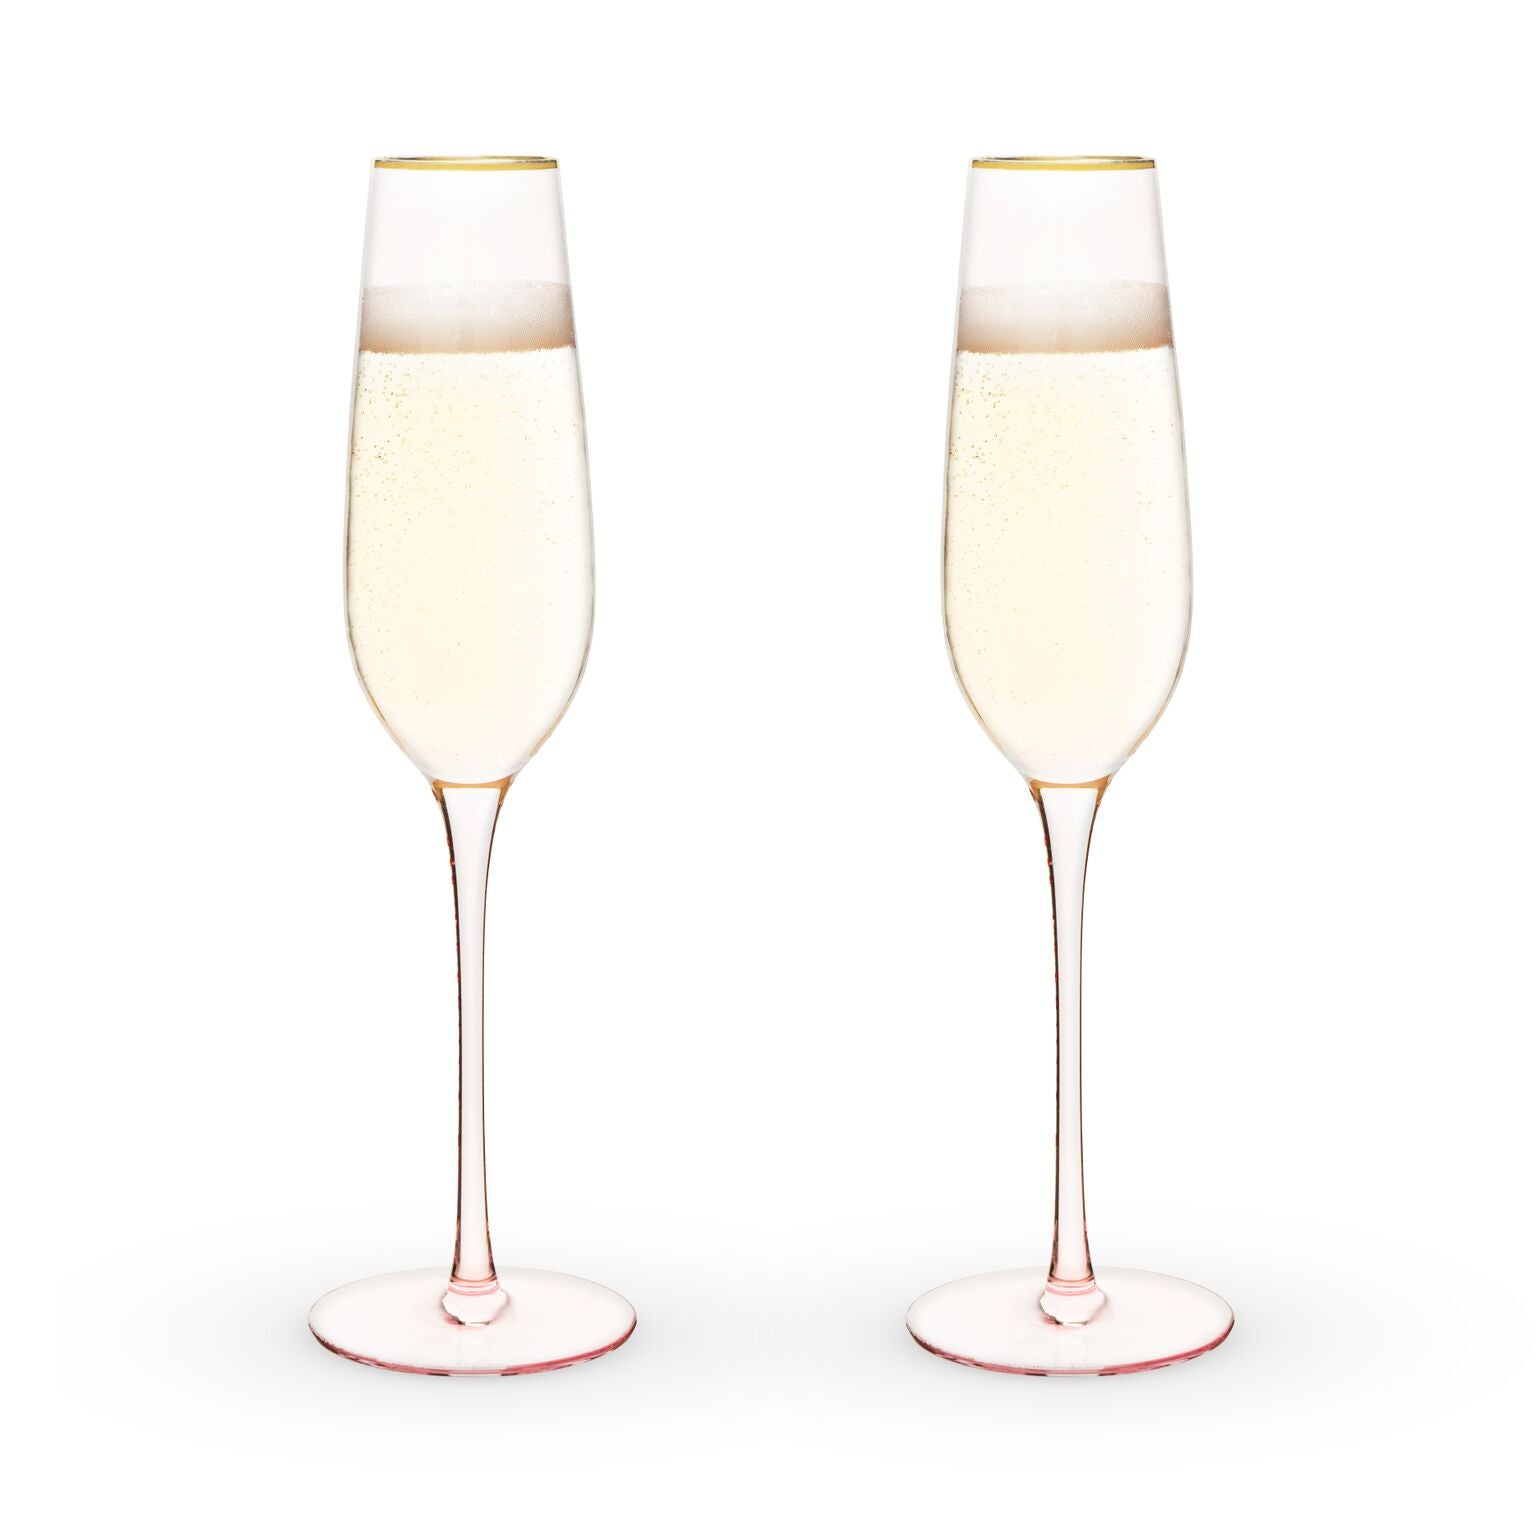 Garden Party: Rose Crystal Champagne Flute Set by Twine